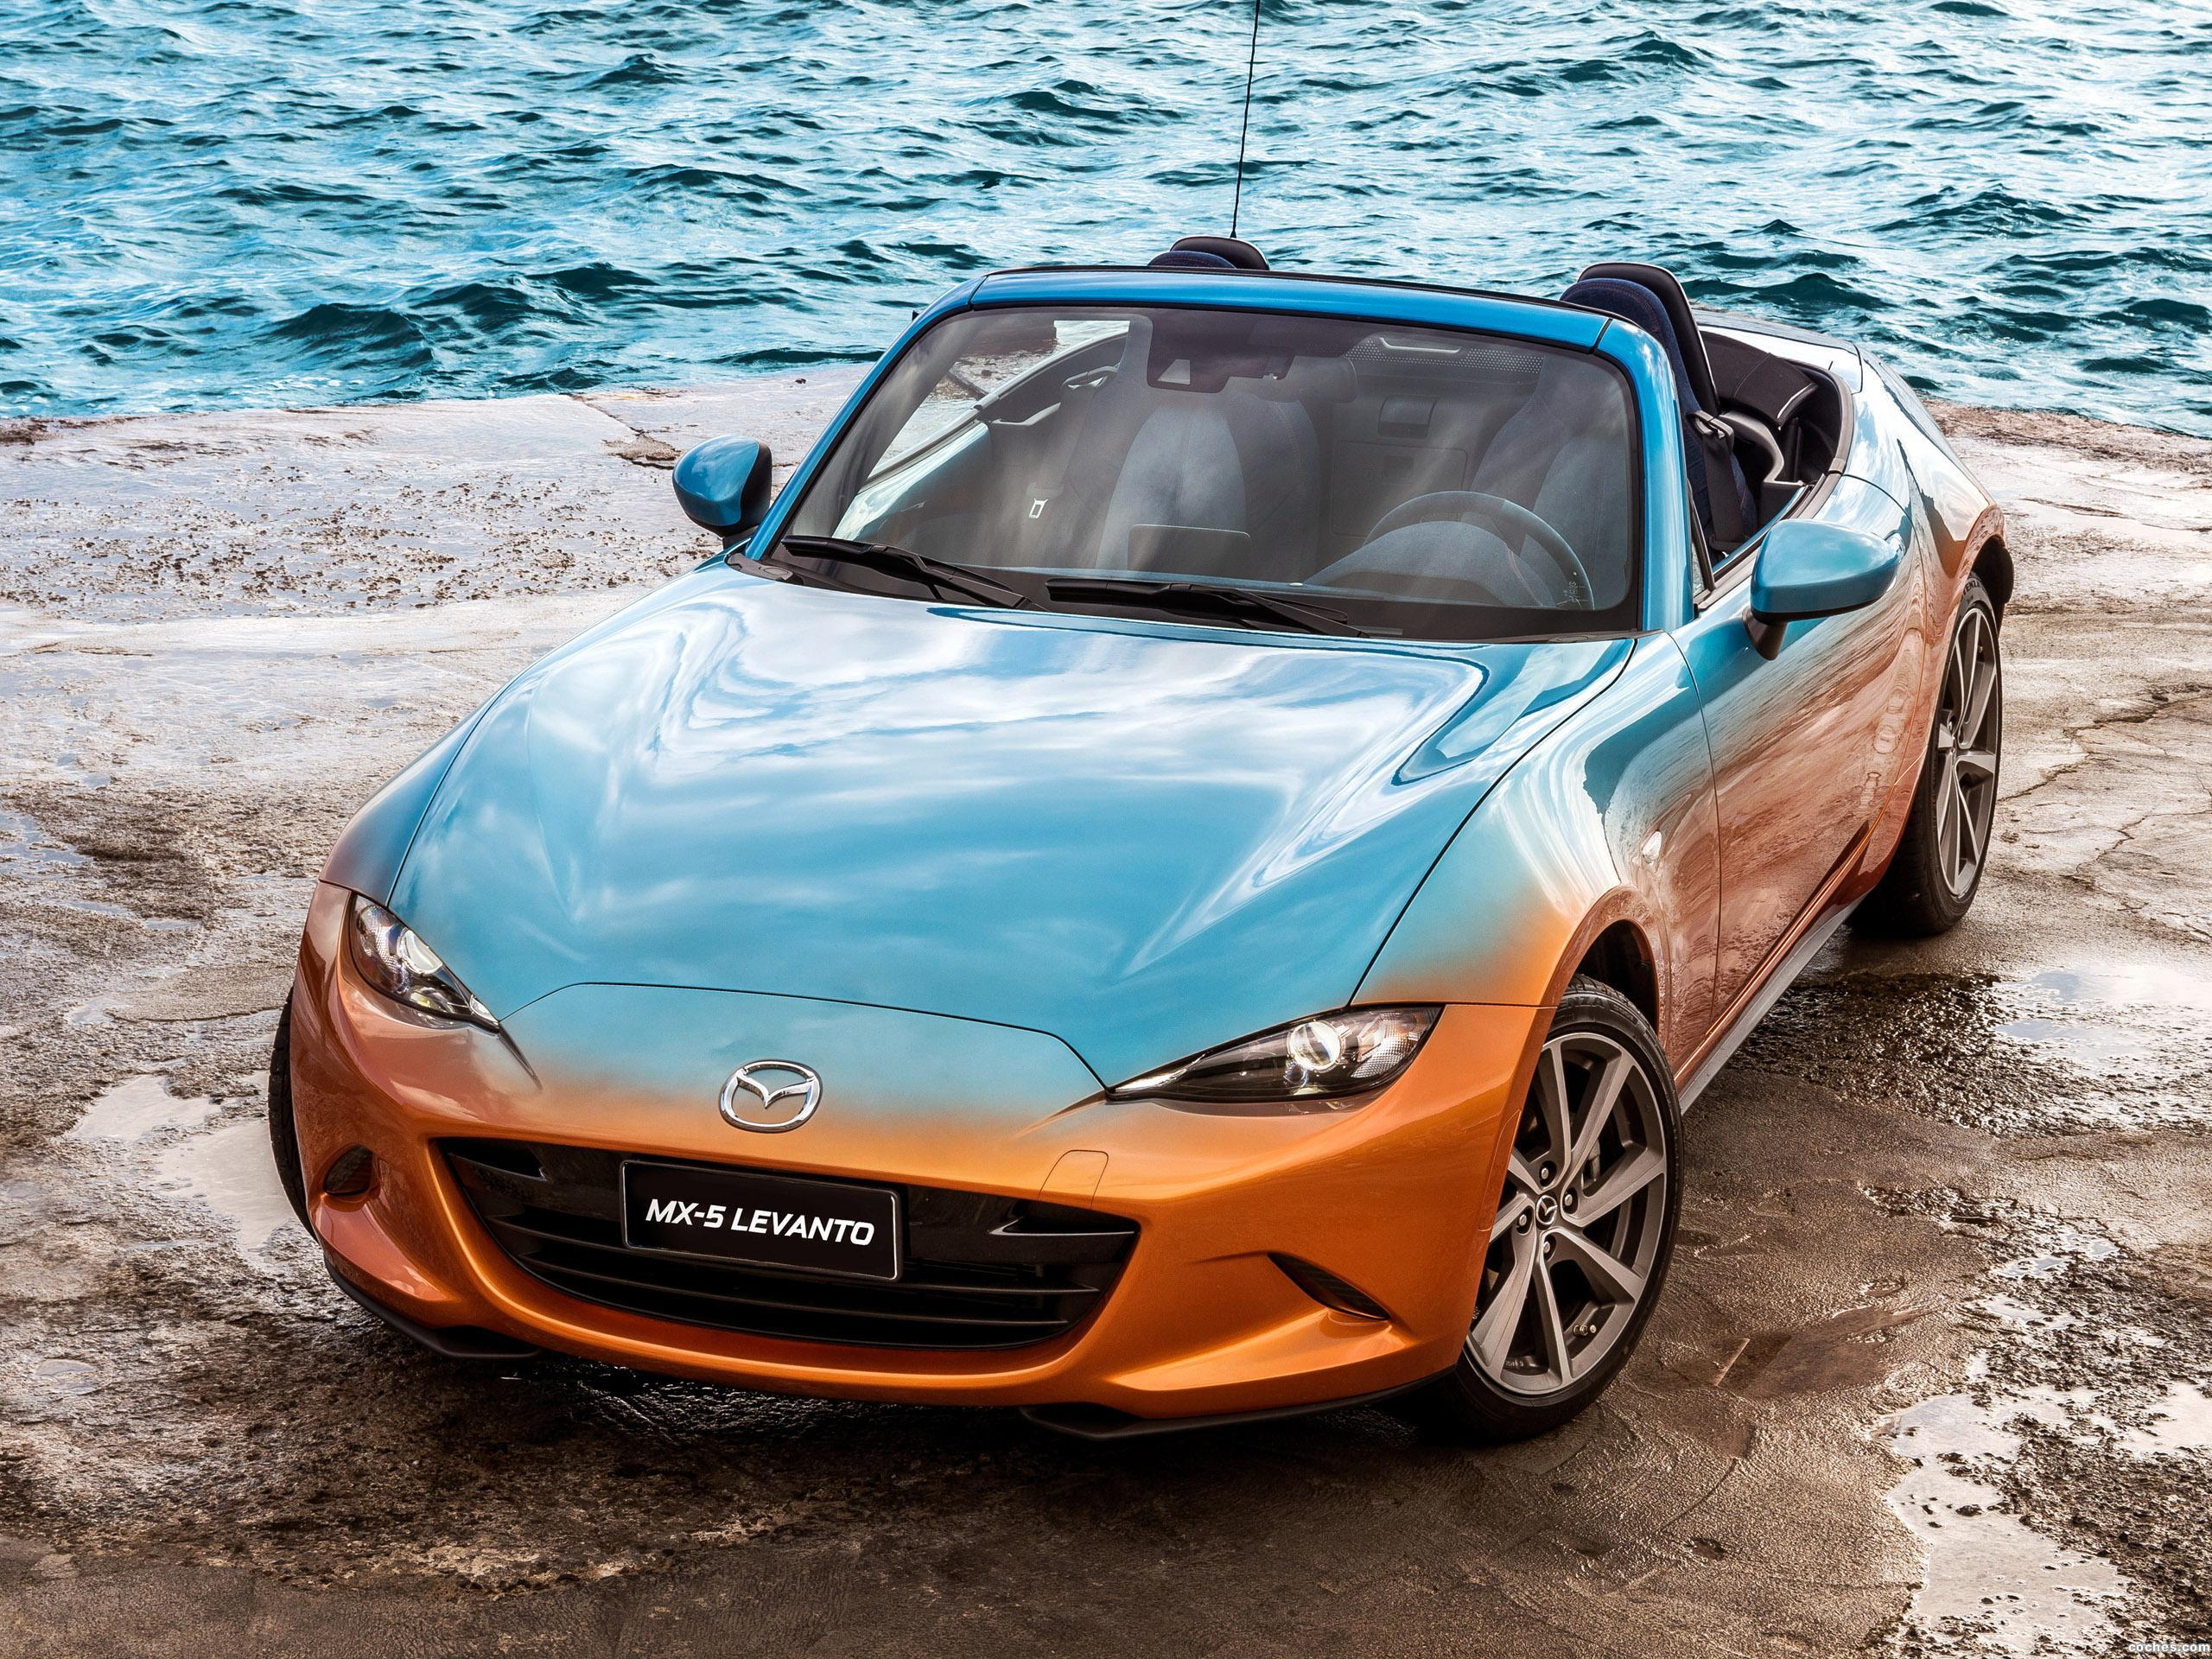 Foto 1 de Mazda MX-5 Levanto by Garage Italia Customs 2016